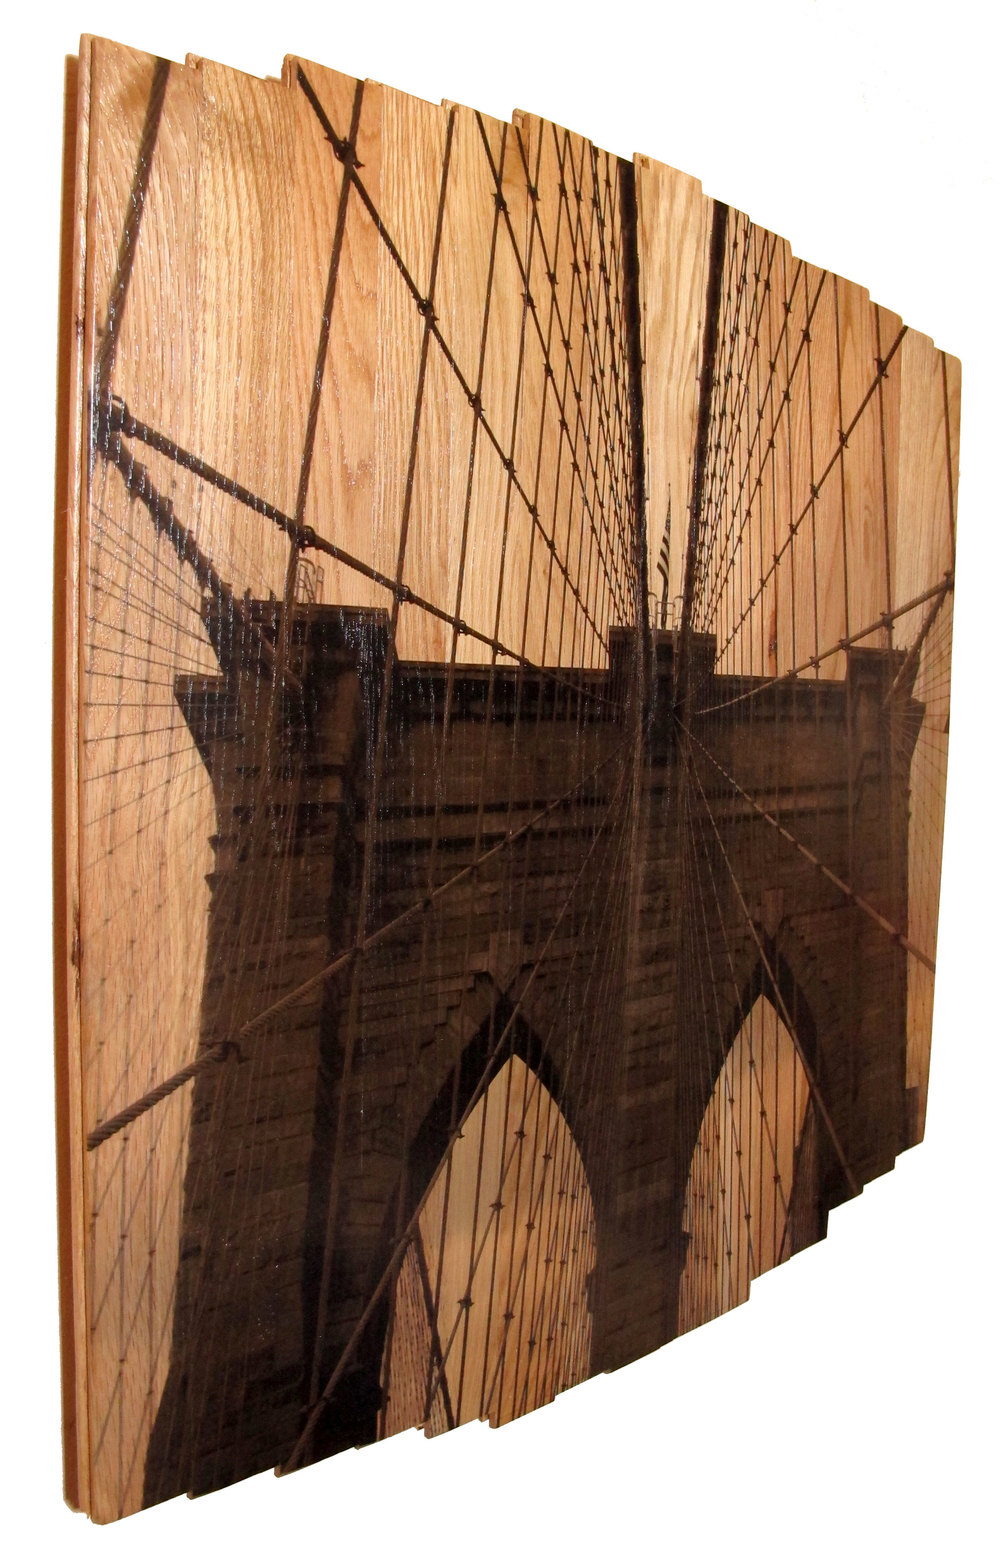 Brooklyn Bridge I,  2016 c print on reclaimed wood floor 34 x 34 x 1.5 in / 86 x 86 x 4 cm  Unique